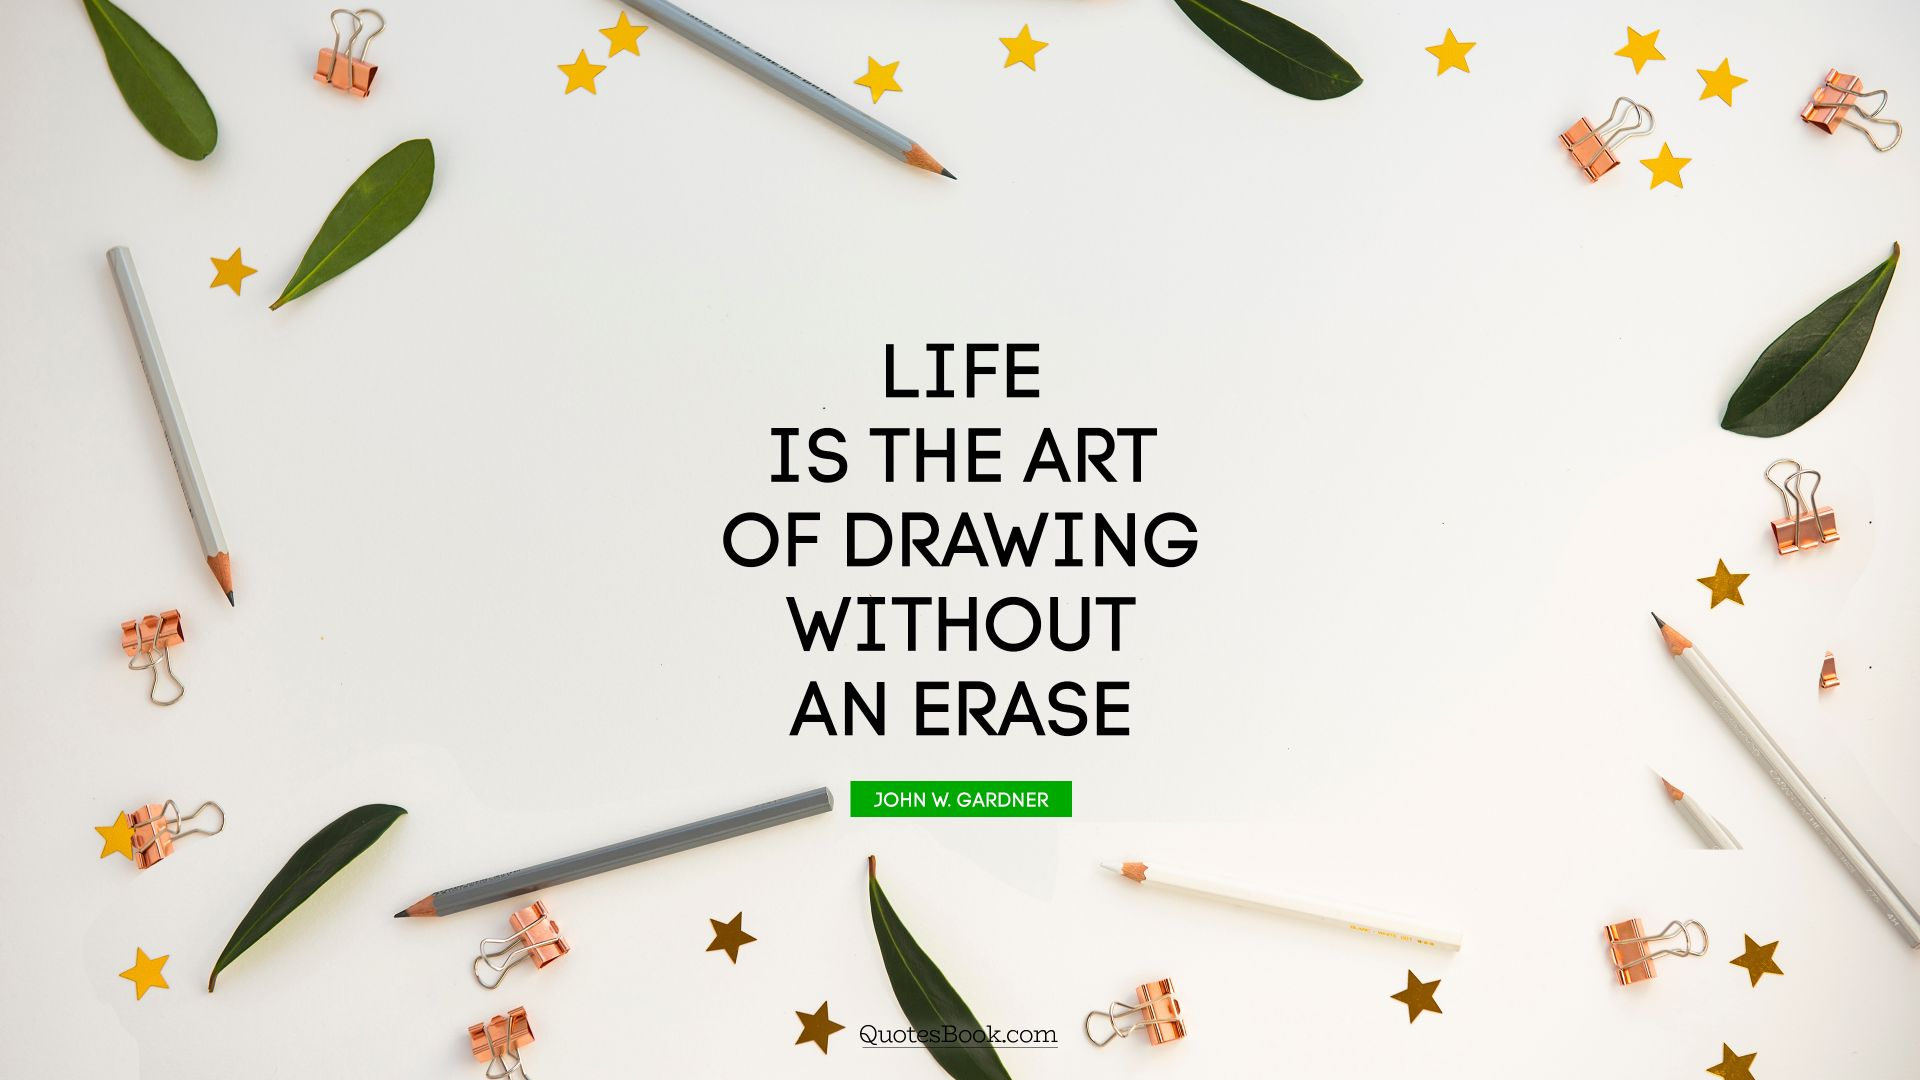 Life is the art of drawing without an erase. - Quote by John W. Gardner